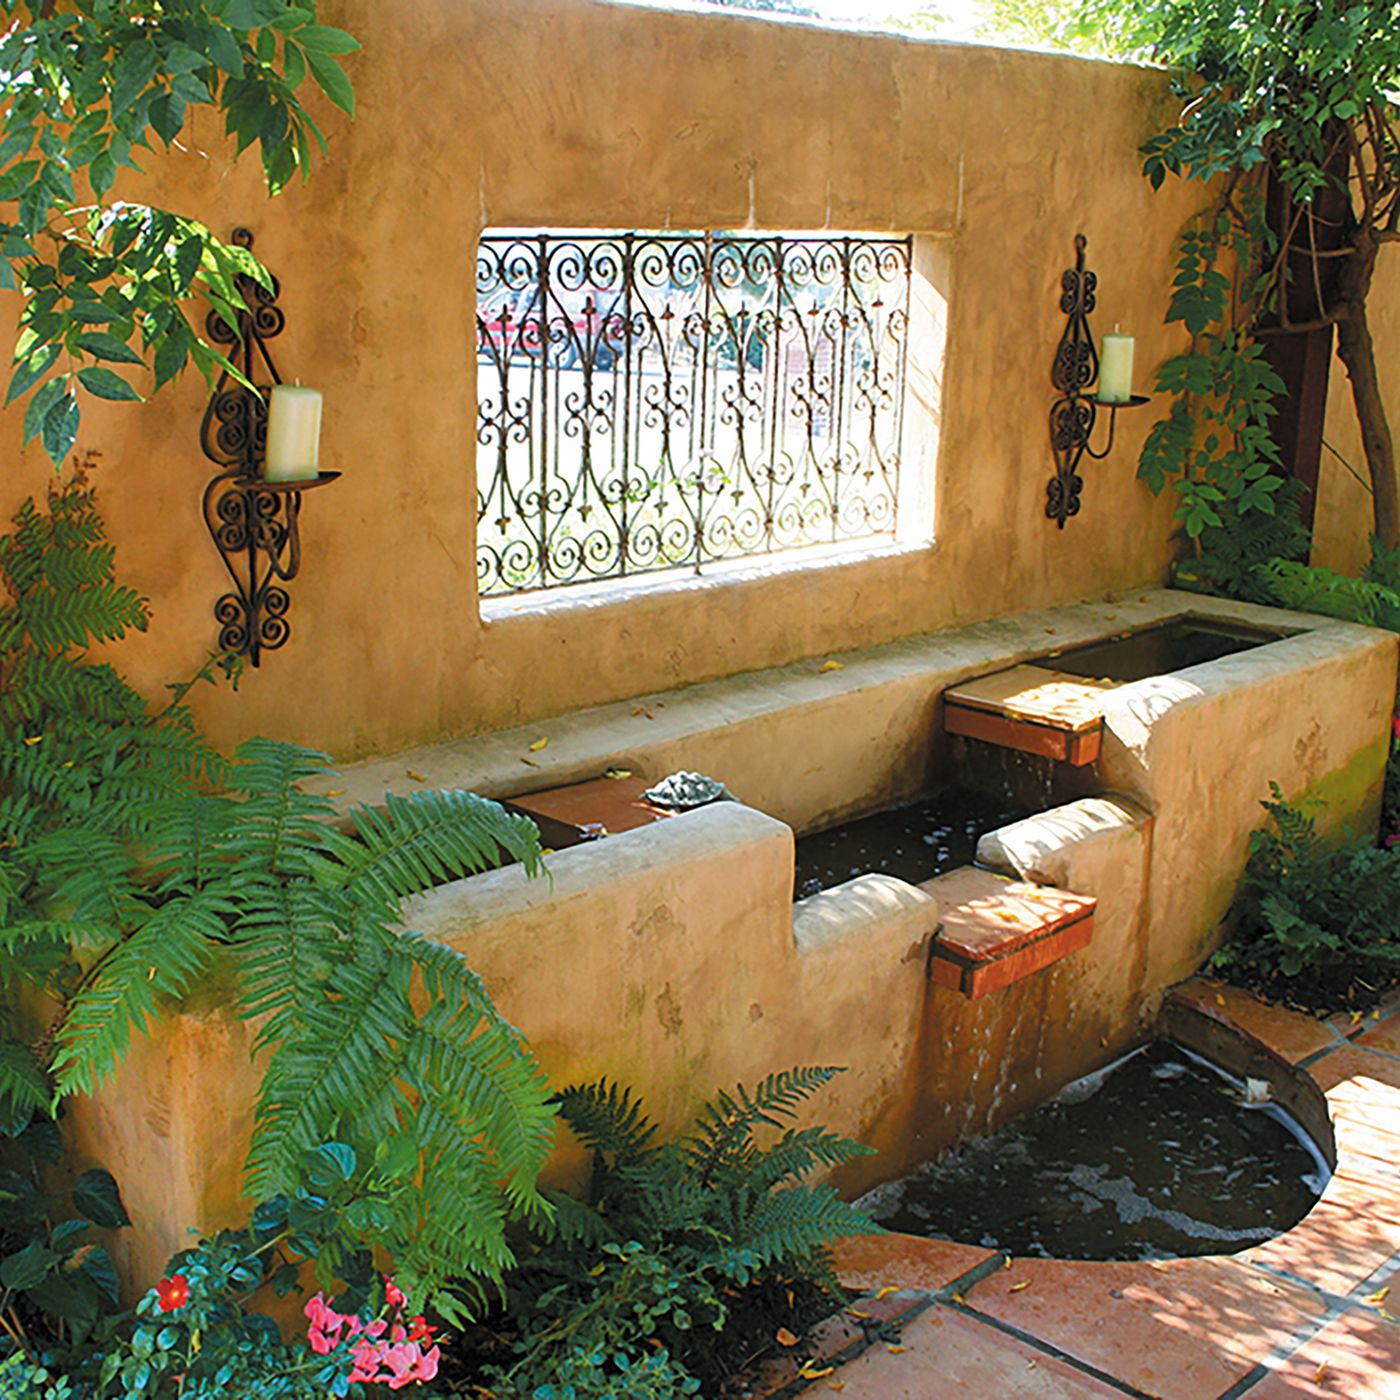 13 Backyard Privacy Ideas to Block Your Neighbors View - This Old